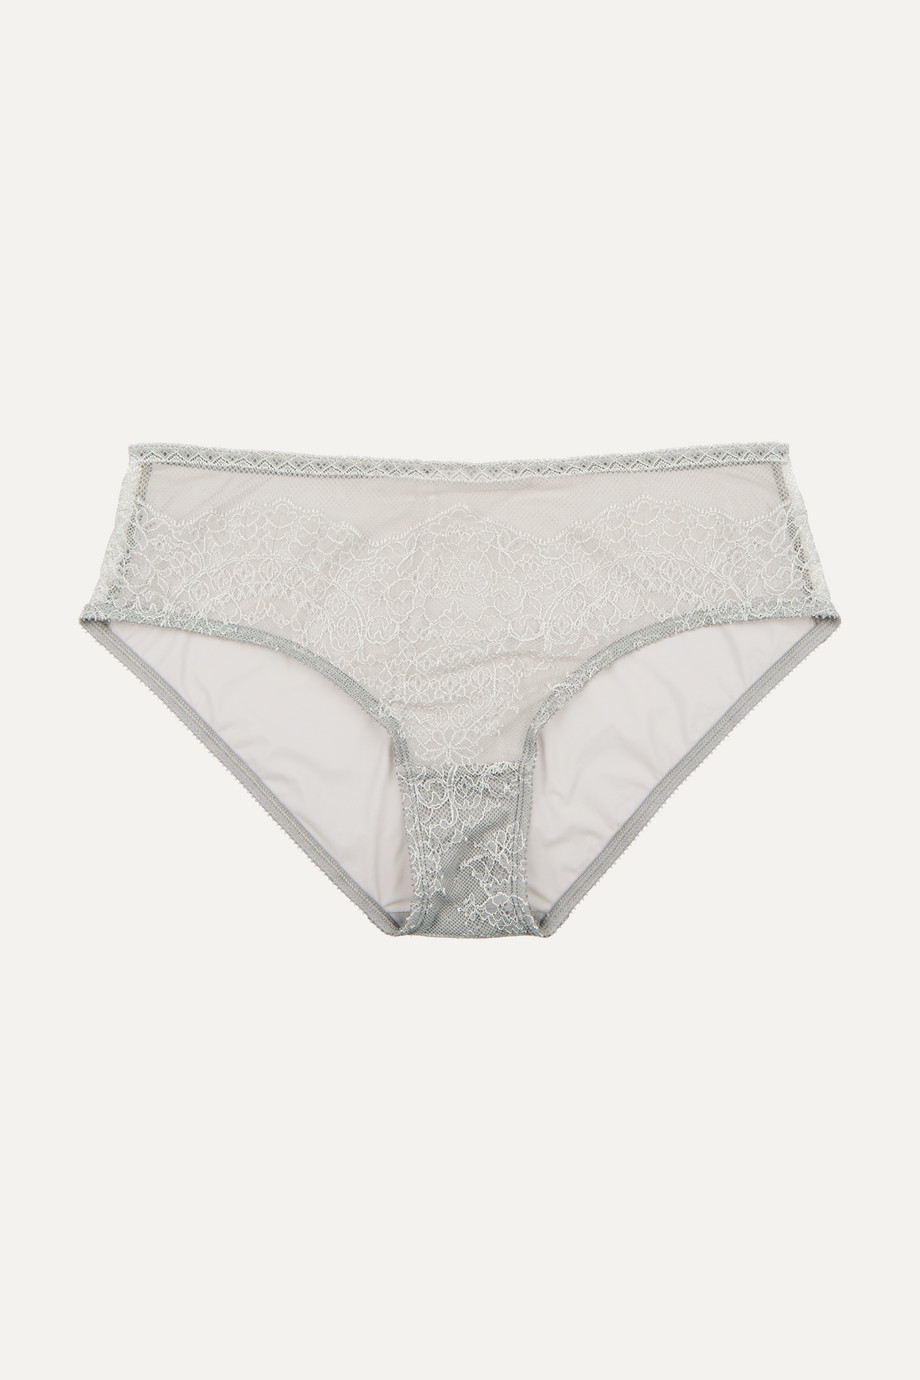 Eres Montsouris Notre-Dame Chantilly lace and tulle briefs